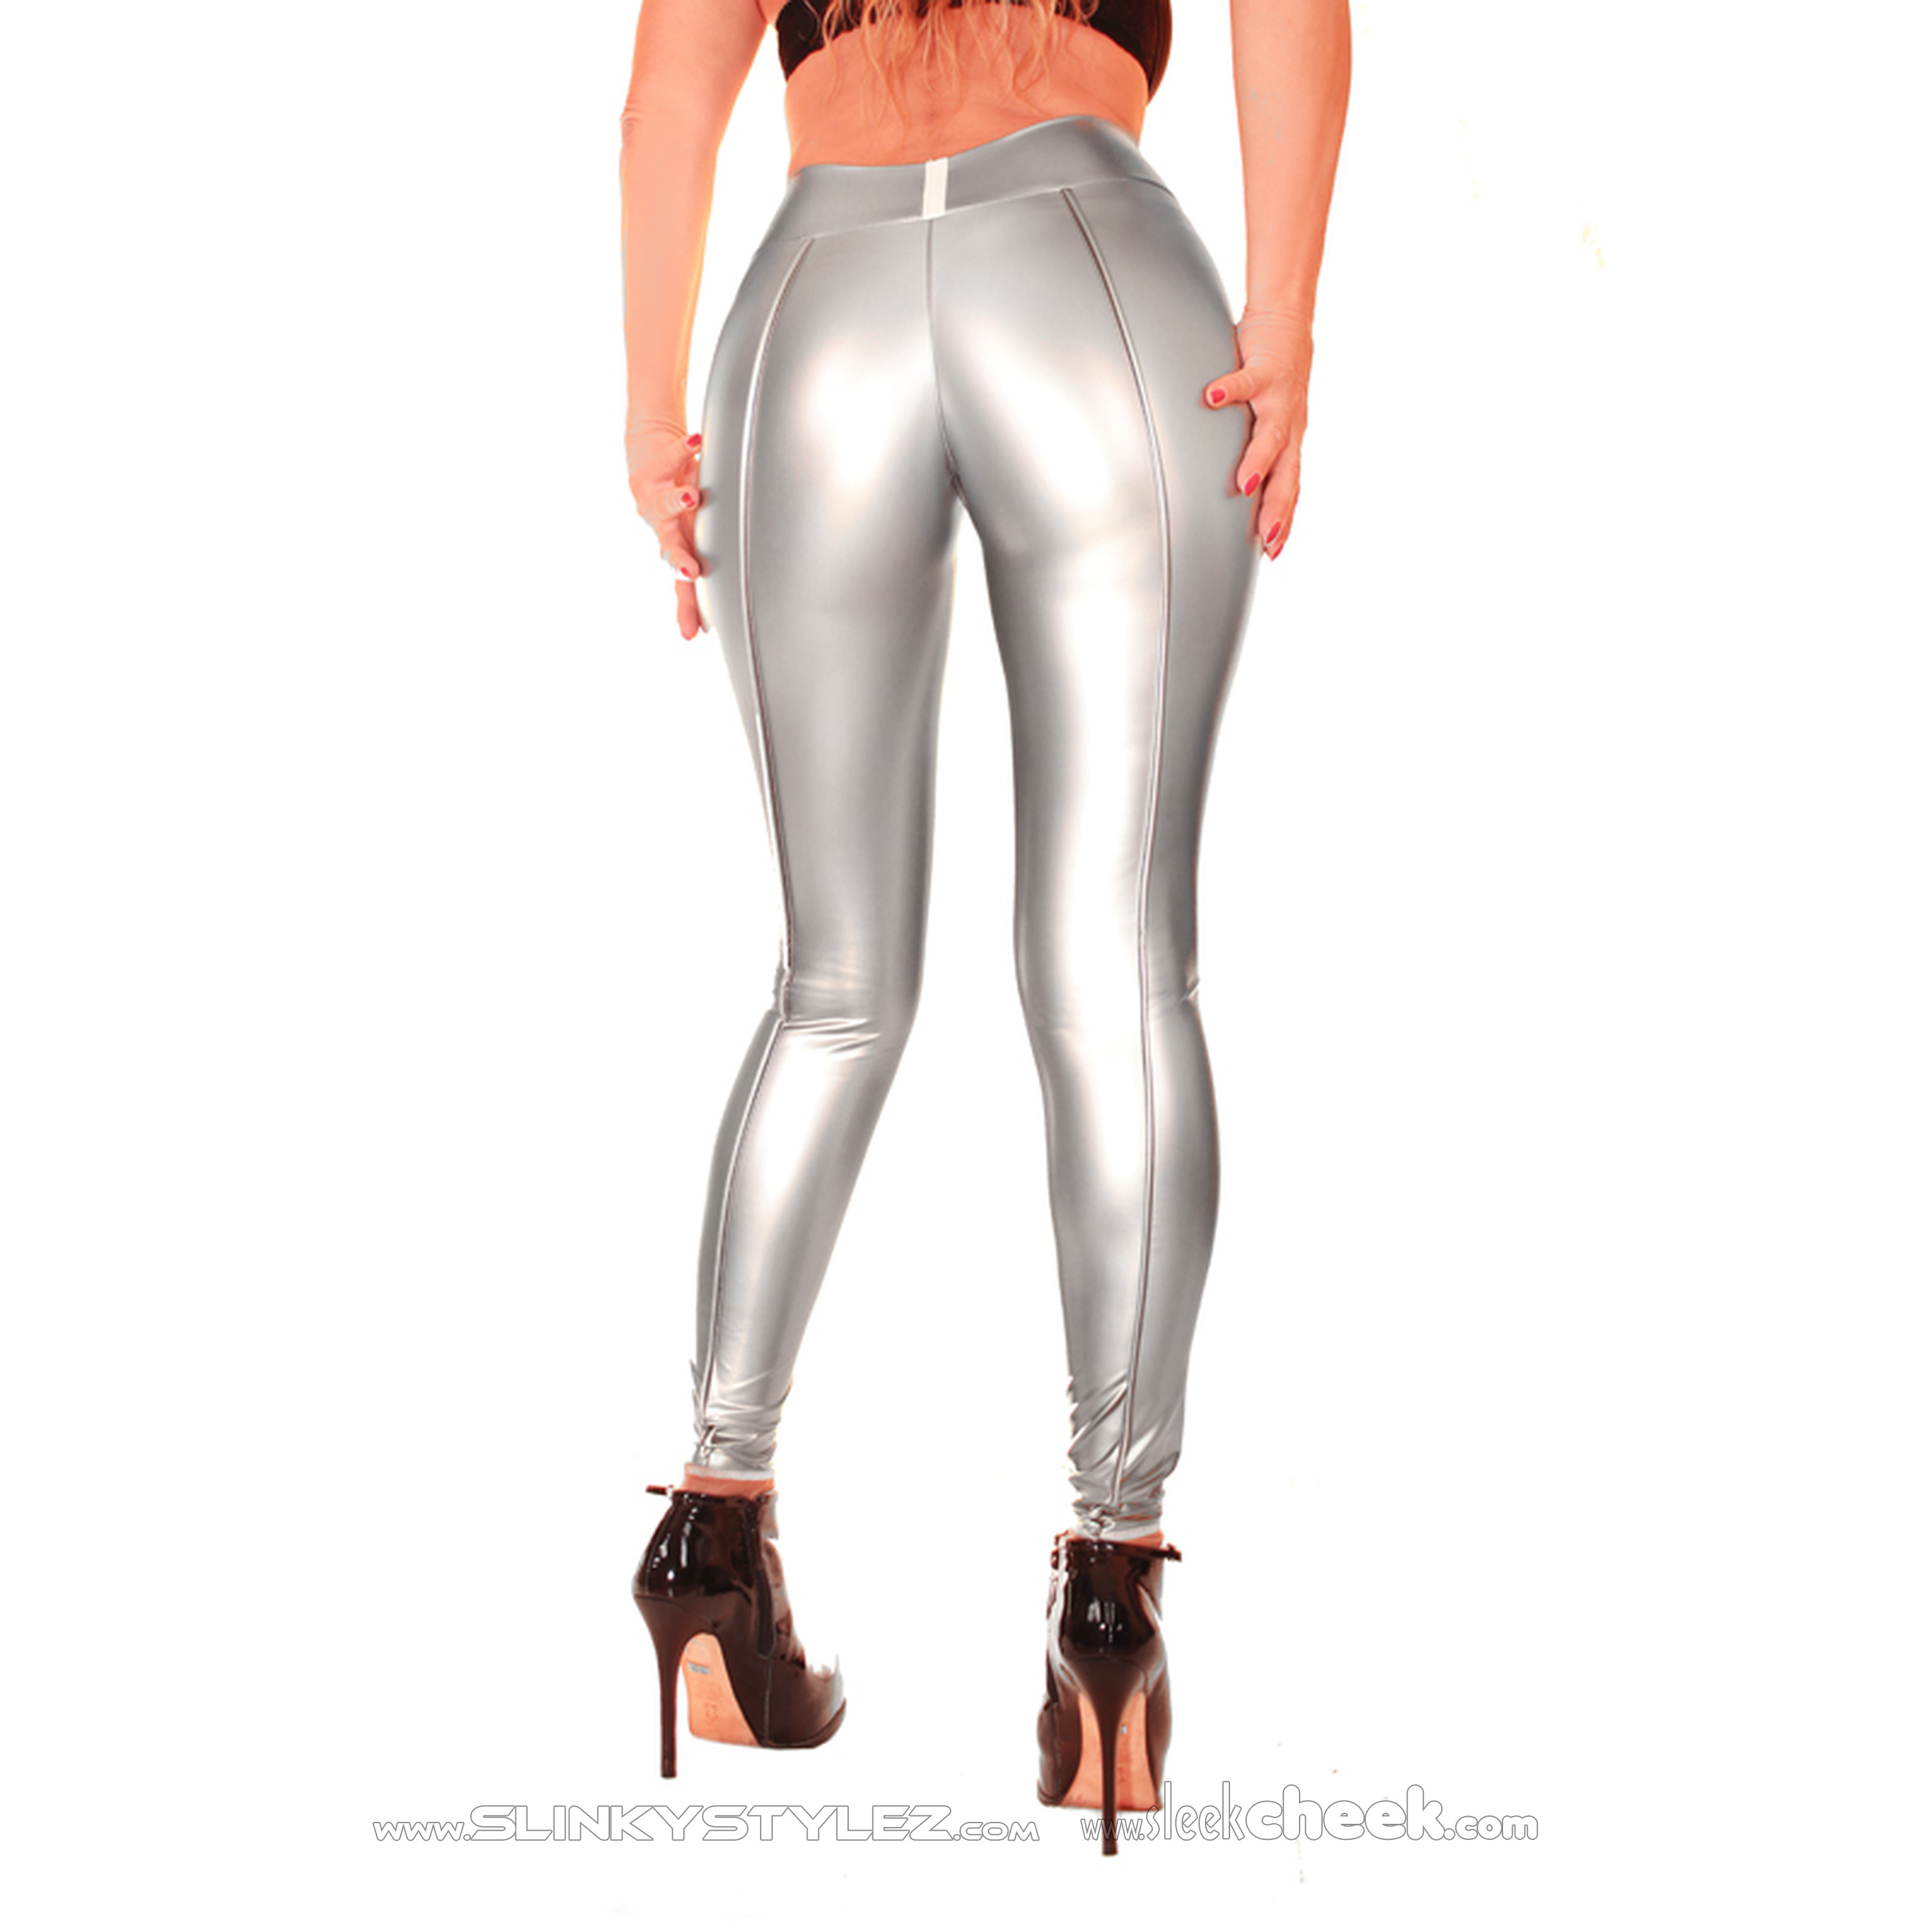 SLINKYSTYLEZ SmoothEdge PussySensation Ouvert-Contour-Leggings HL5ASX - CrystalLac Z360 - CUSTOM (L56D)